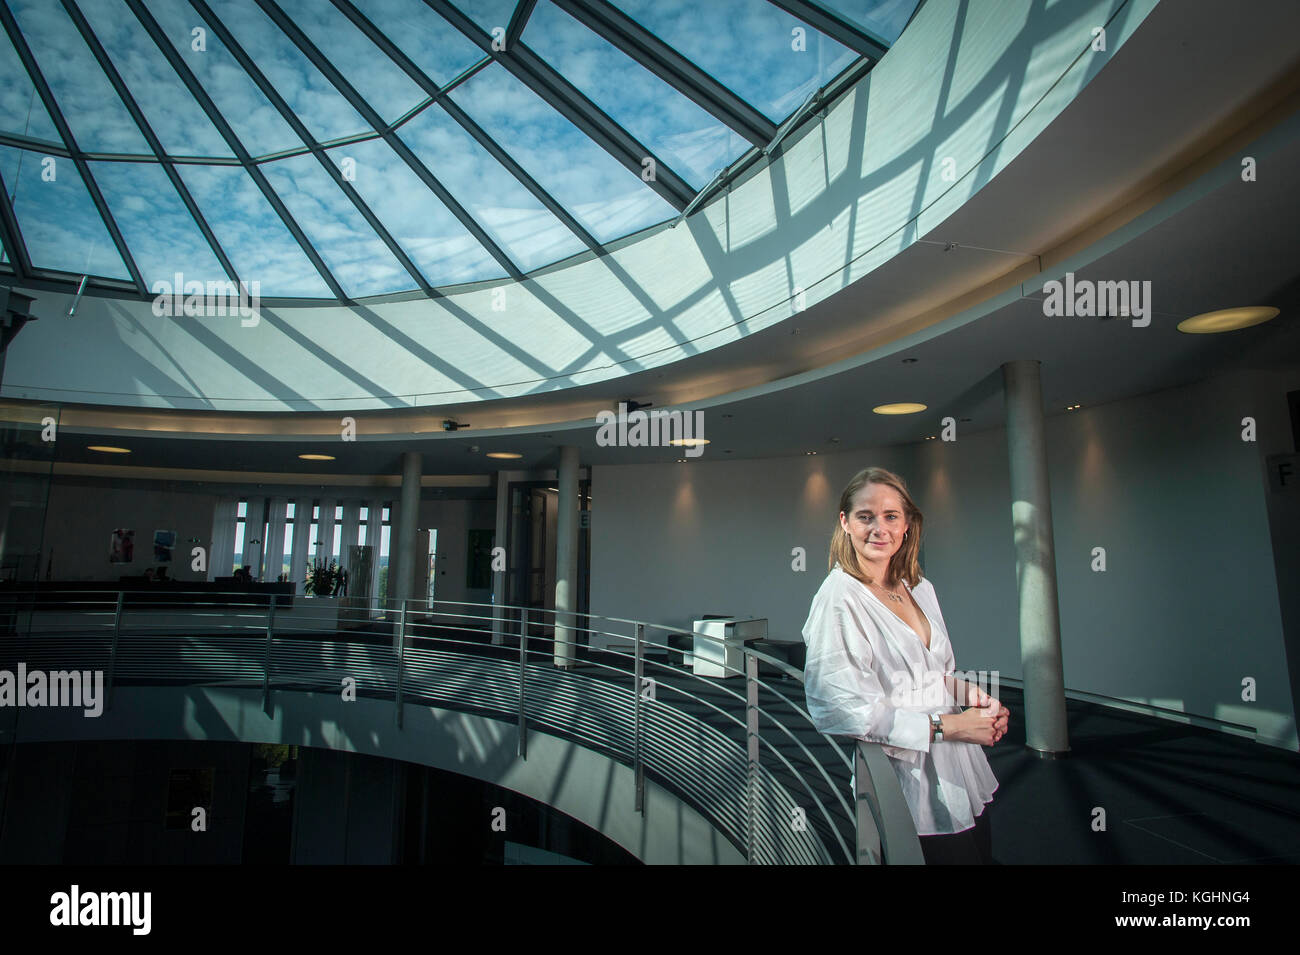 Anne Mette Høyer Head of Business Relations for SAP. Photographed  at their offices in Walldorf, Baden-Württemberg, - Stock Image